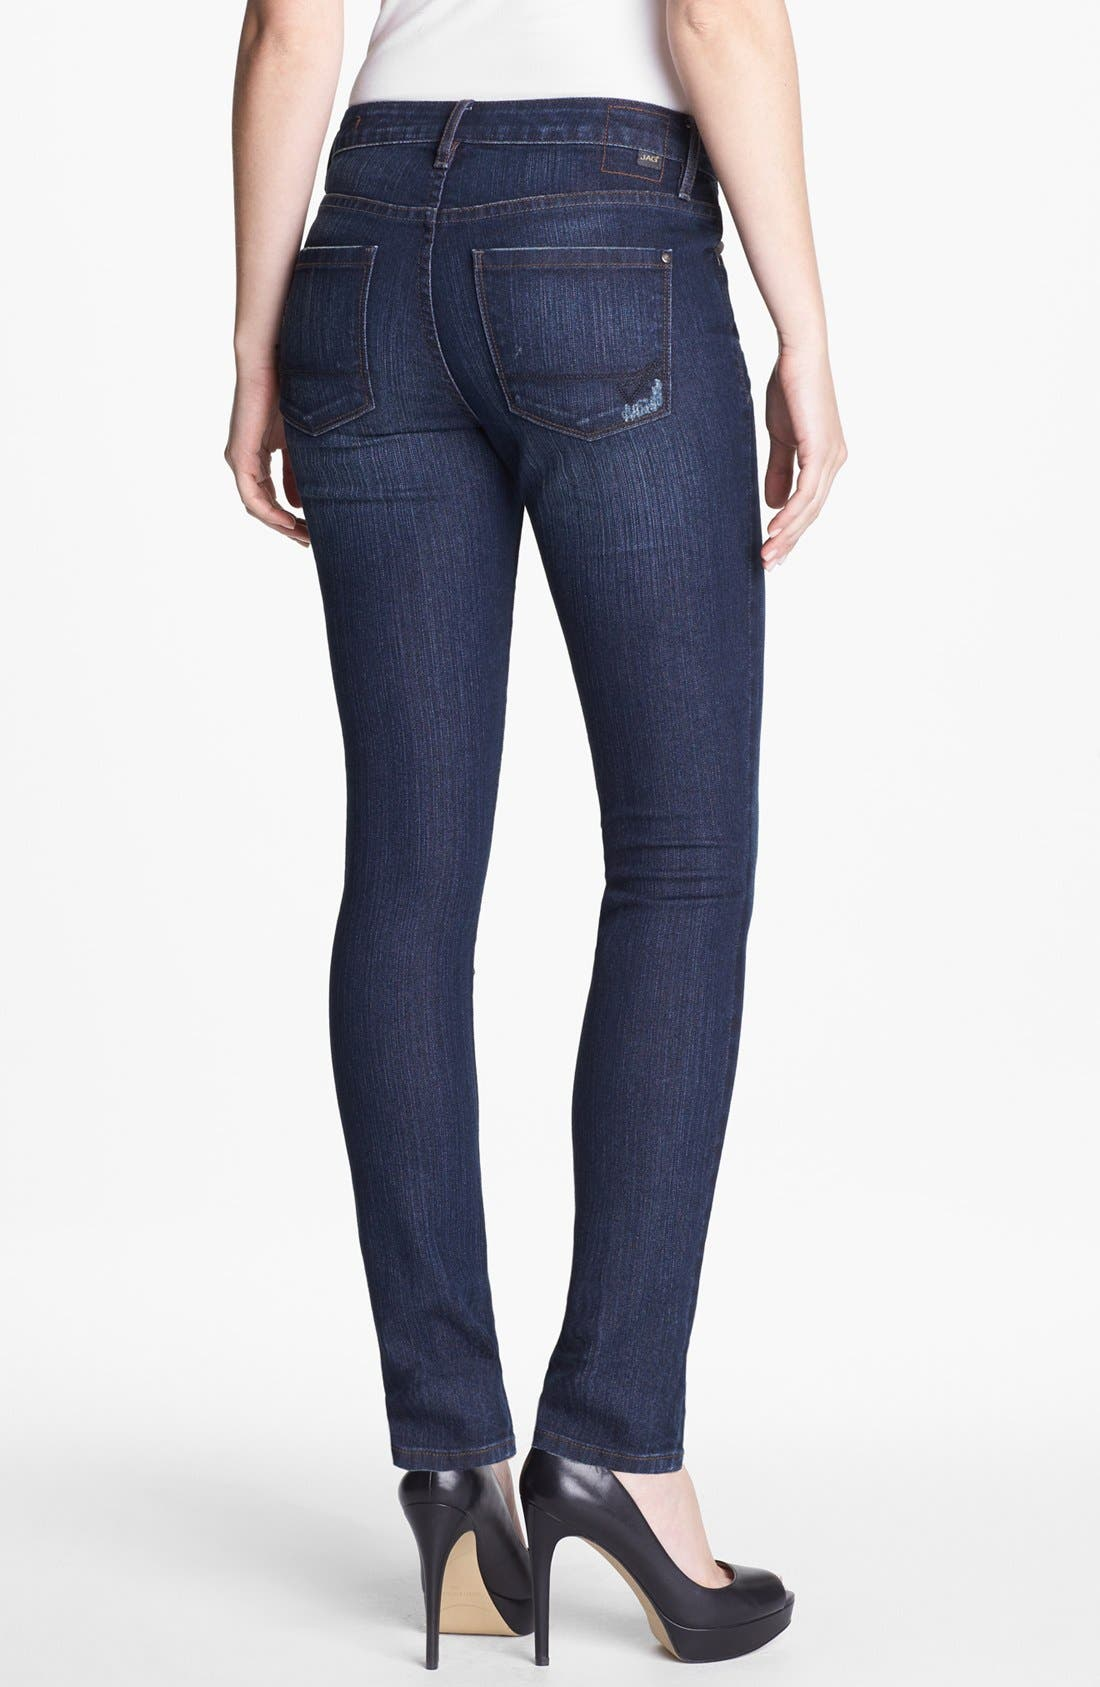 Alternate Image 2  - Jag Jeans 'Reece' Skinny Stretch Jeans (Online Only)